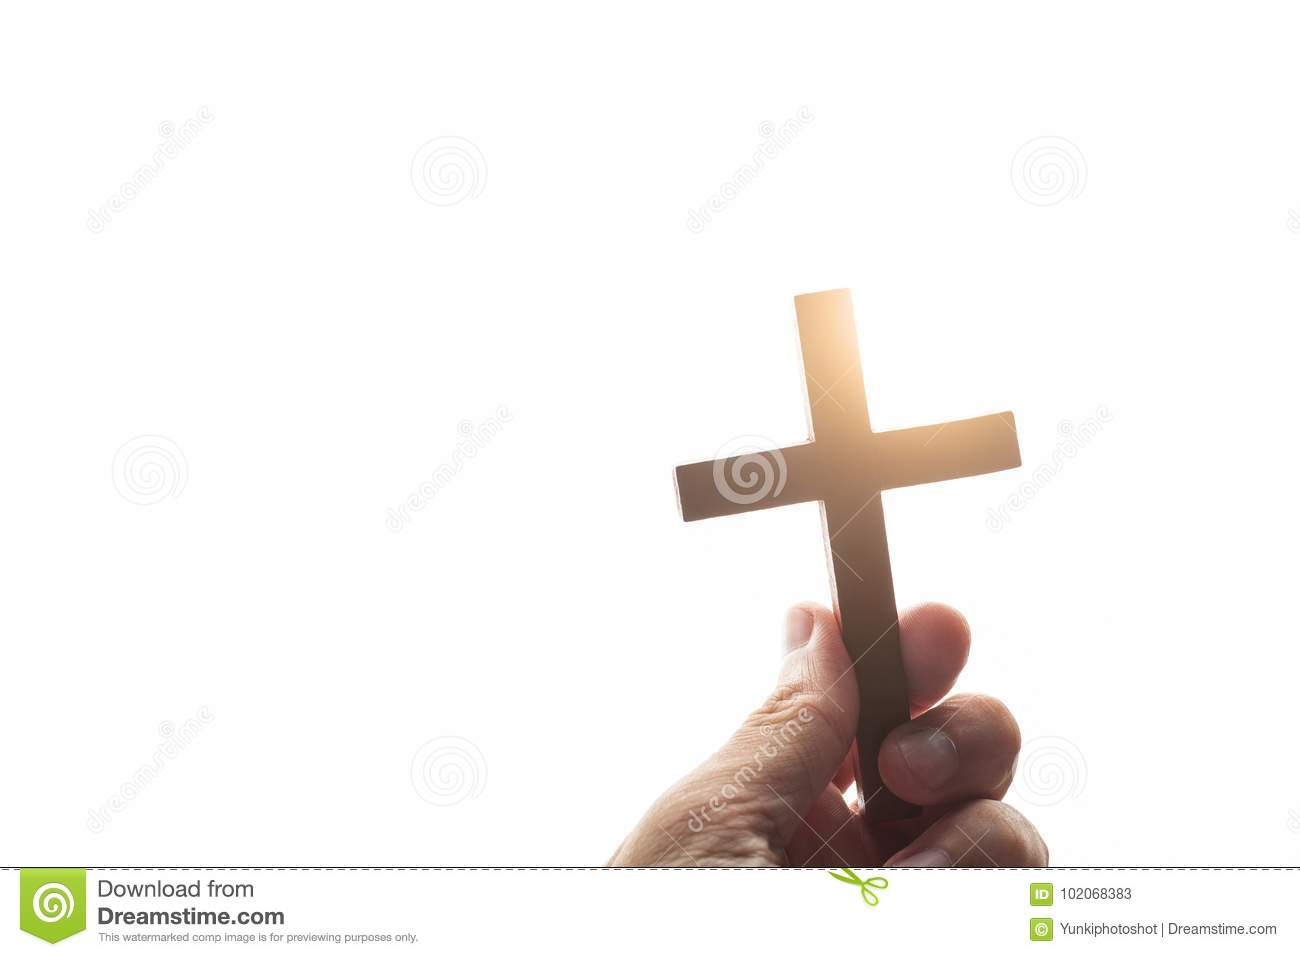 Vintage hand of a Christian man